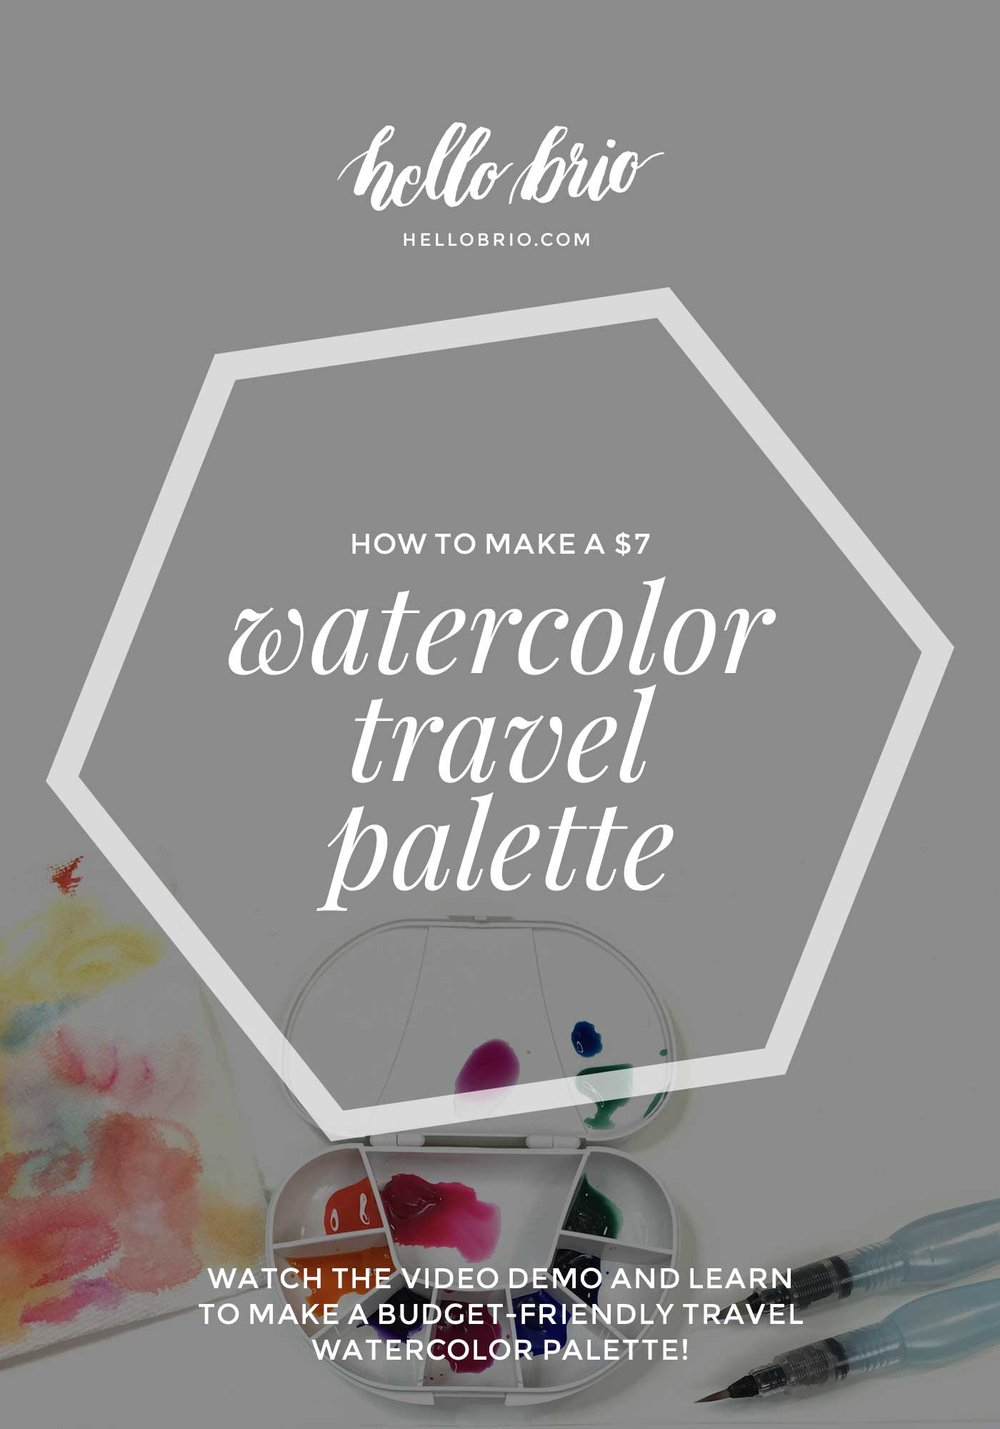 watercolor-travel-palette.jpg